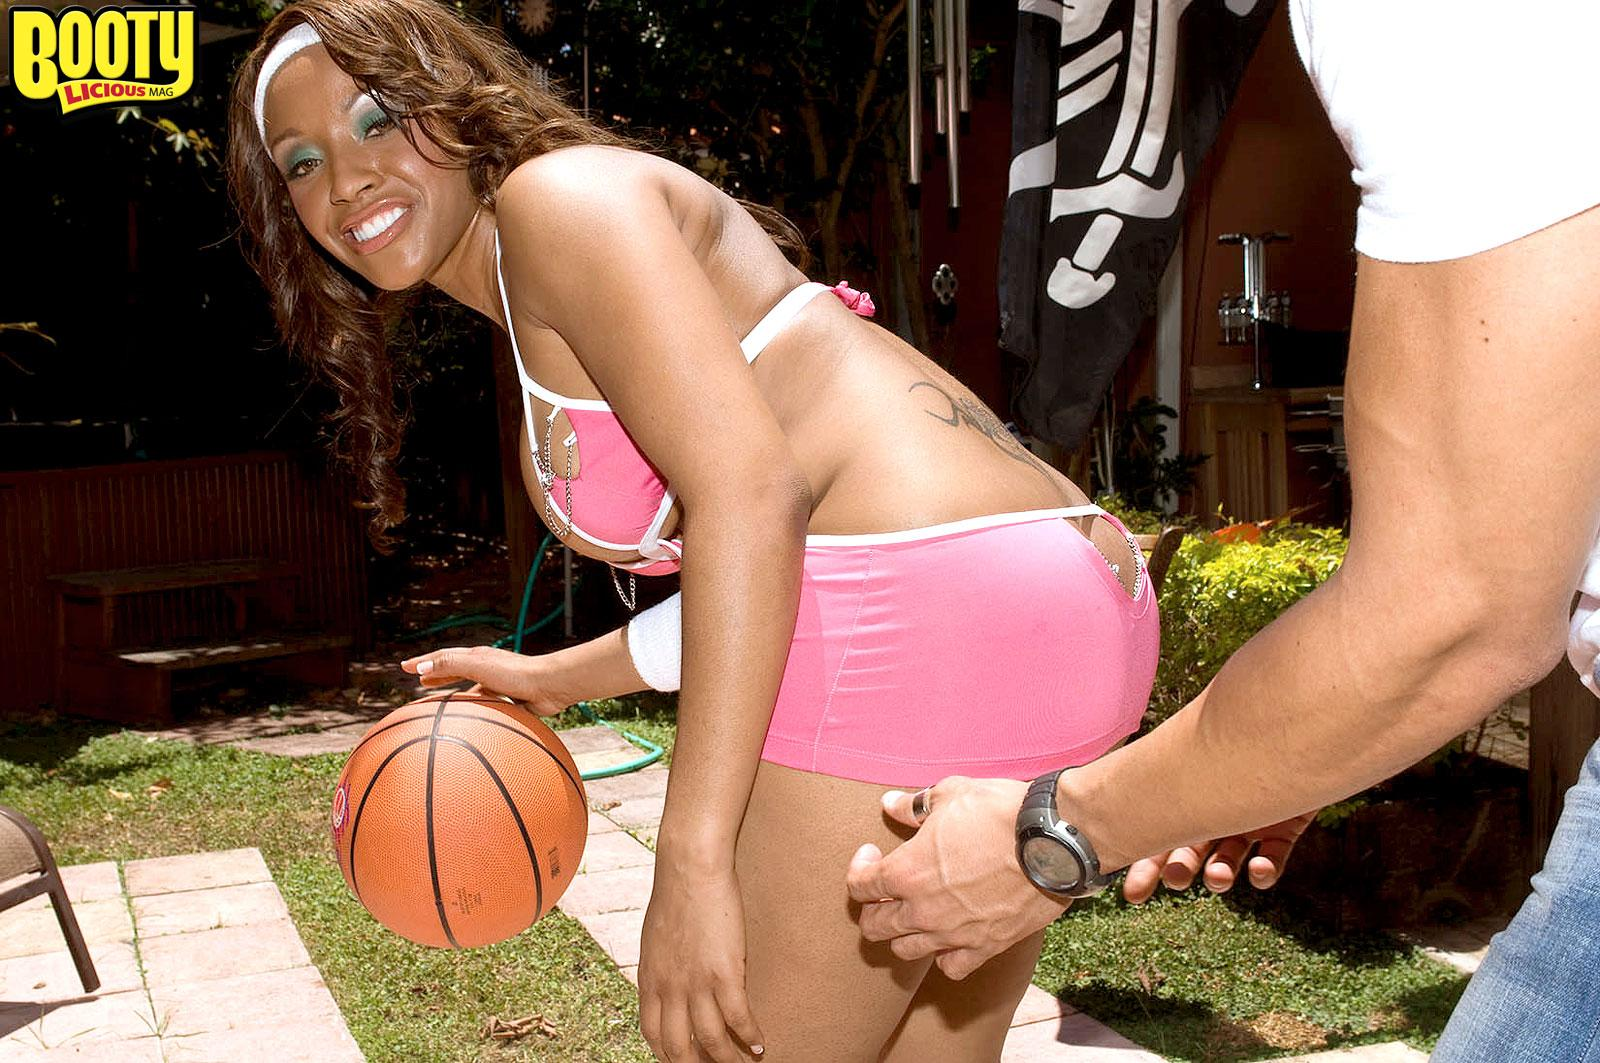 Black chick Ayana Angel flaunts her massive arse in a short micro-skirt while dribbling a basketball